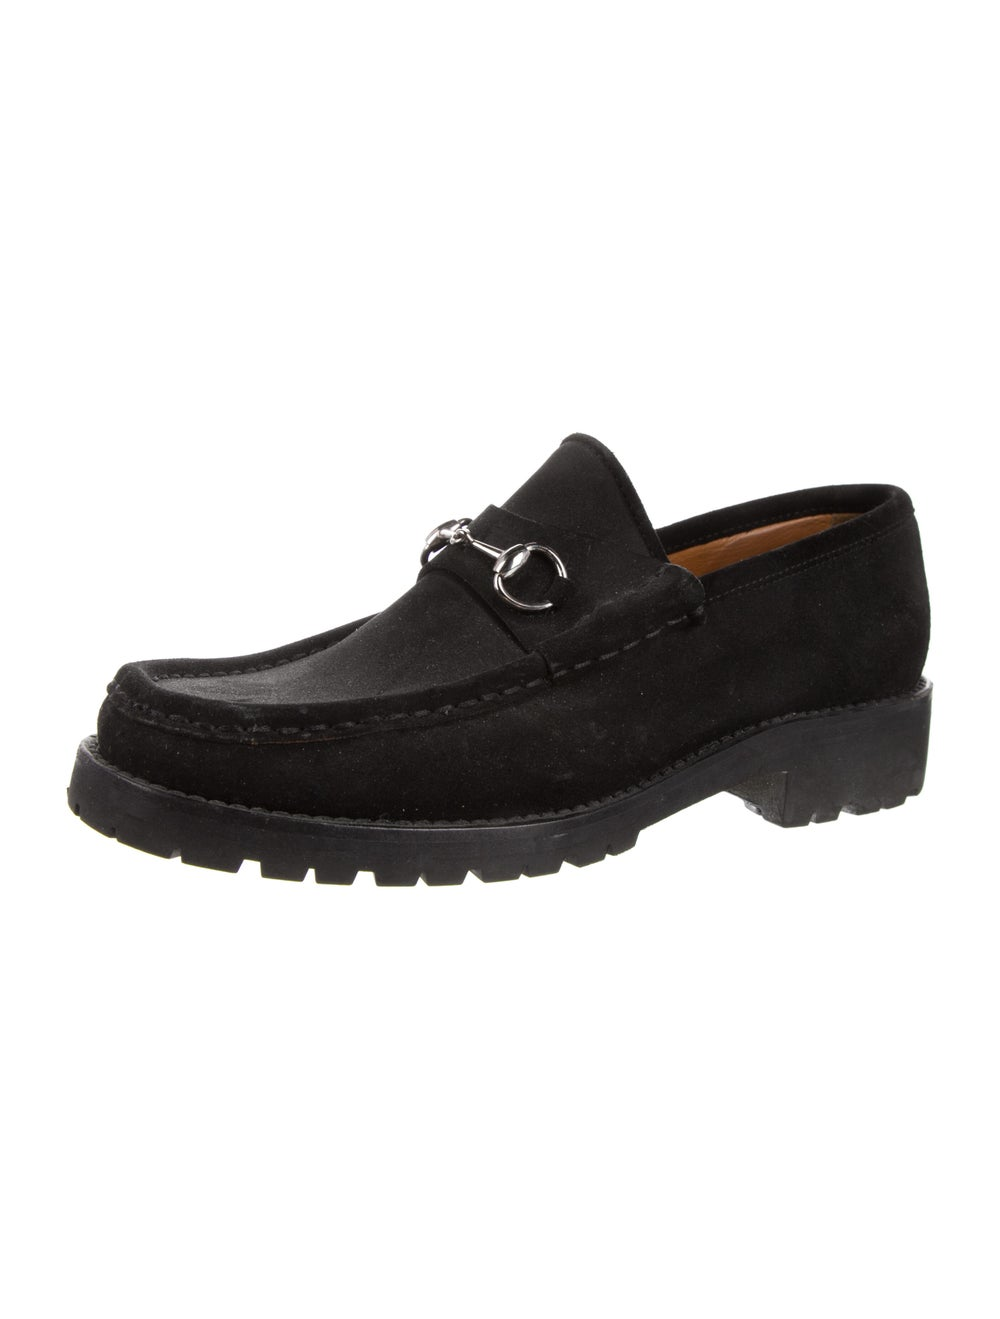 Gucci 1955 Horsebit Accent Suede Loafers Black - image 2